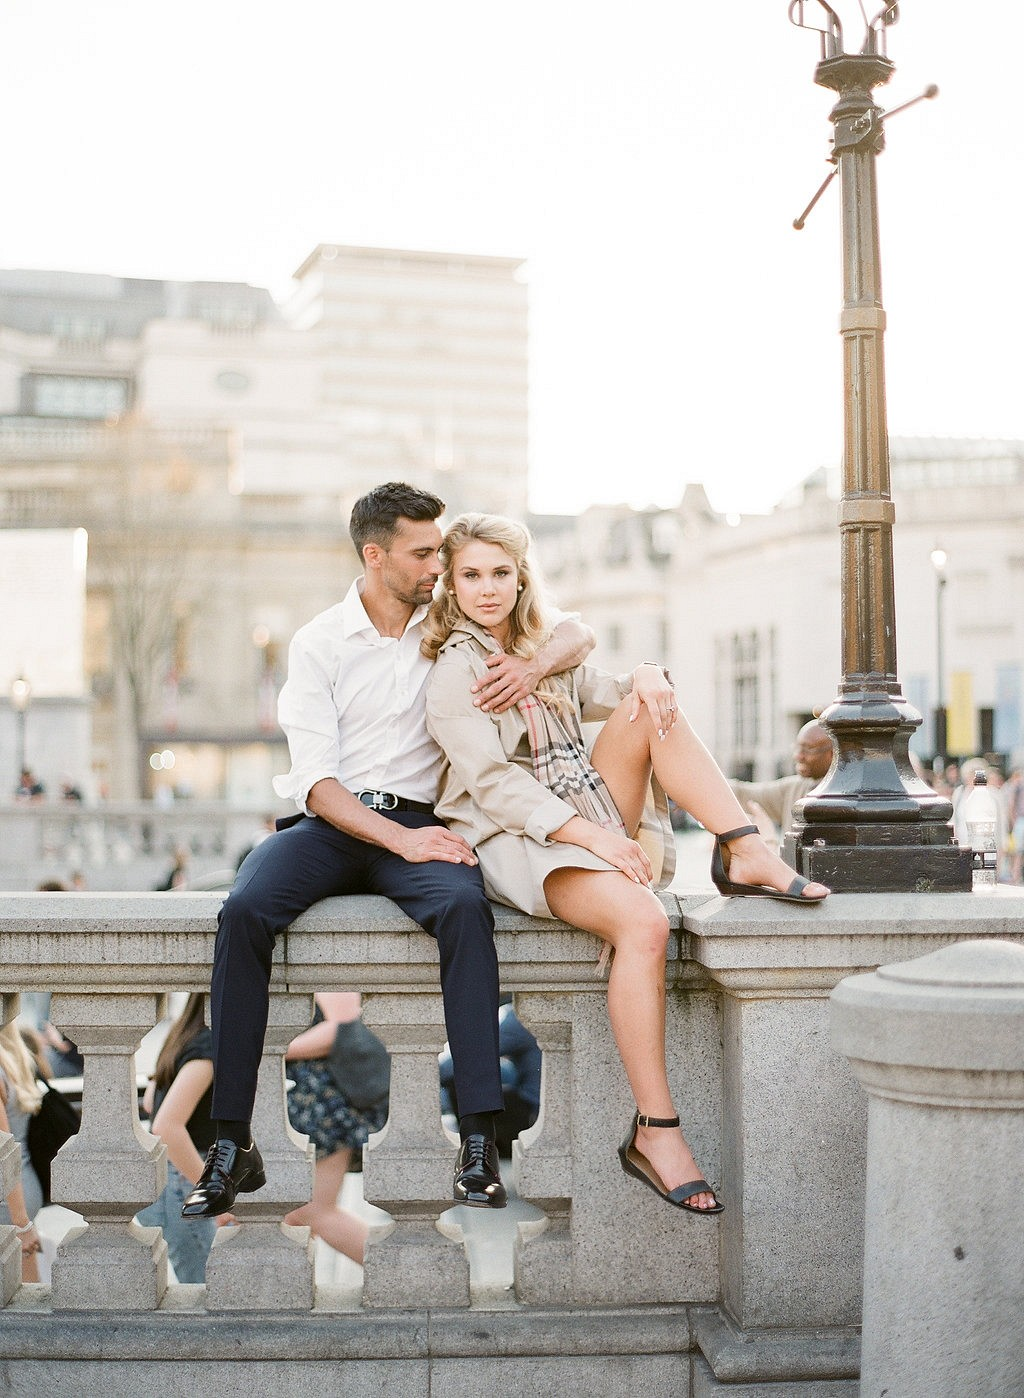 Libby & Marcus - Romantic London City Engagement